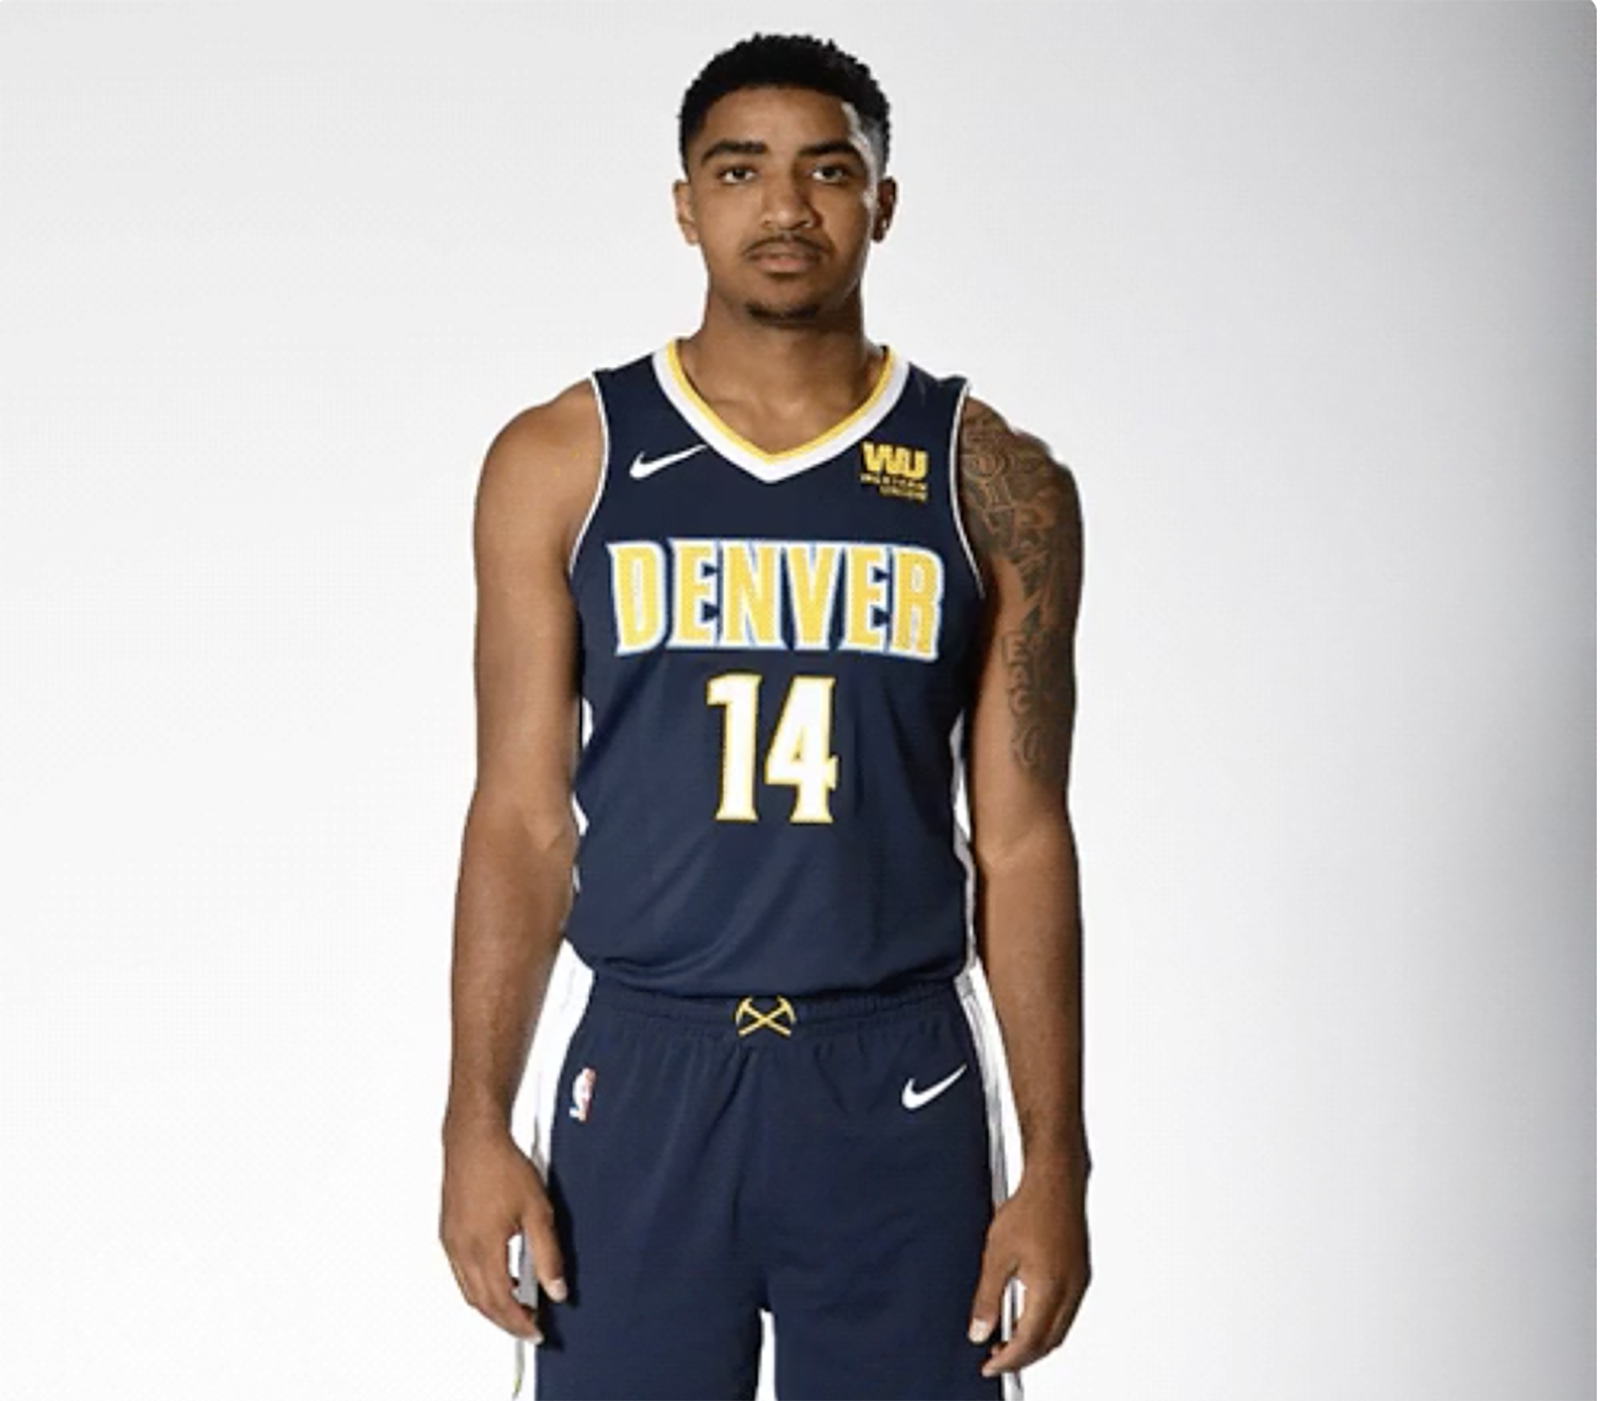 Nuggets English Jersey: A Look Back At Denver Nuggets' History